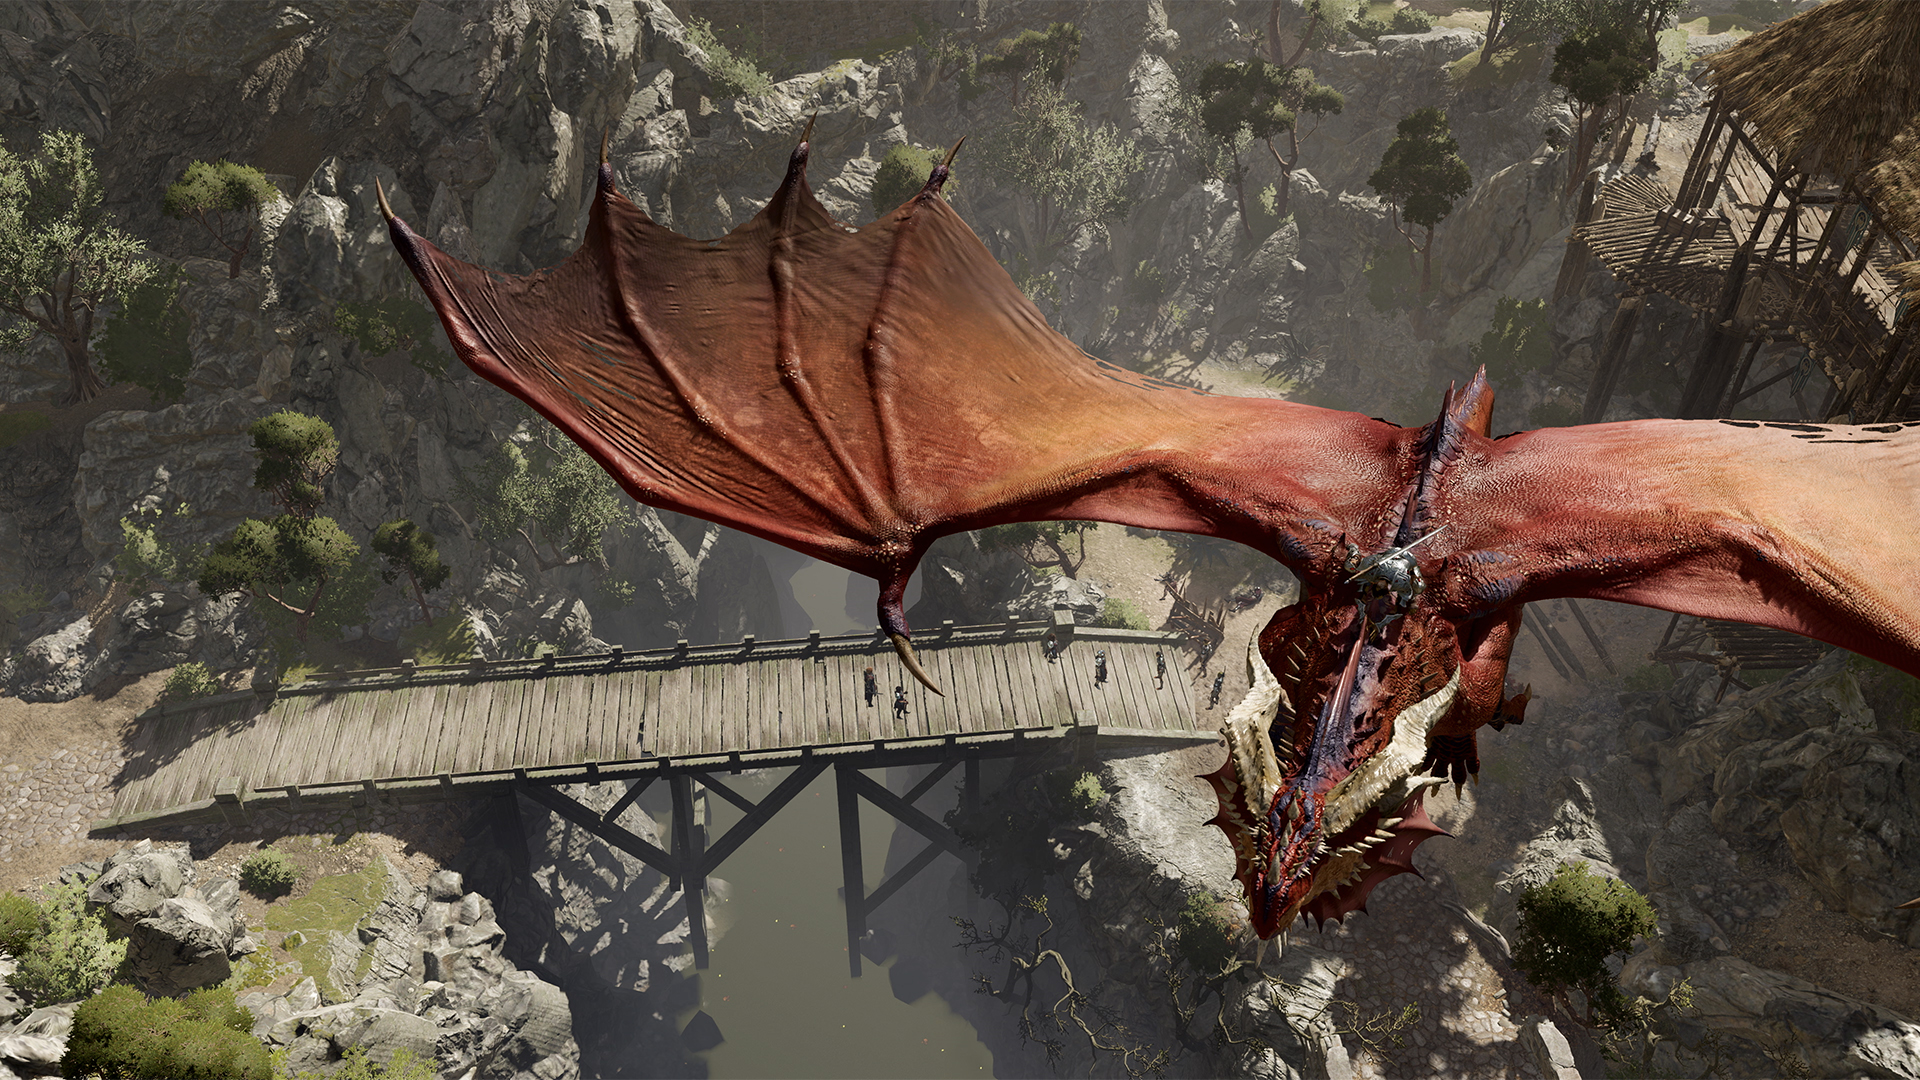 A dragon flies over a bridge in Baldur's Gate 3